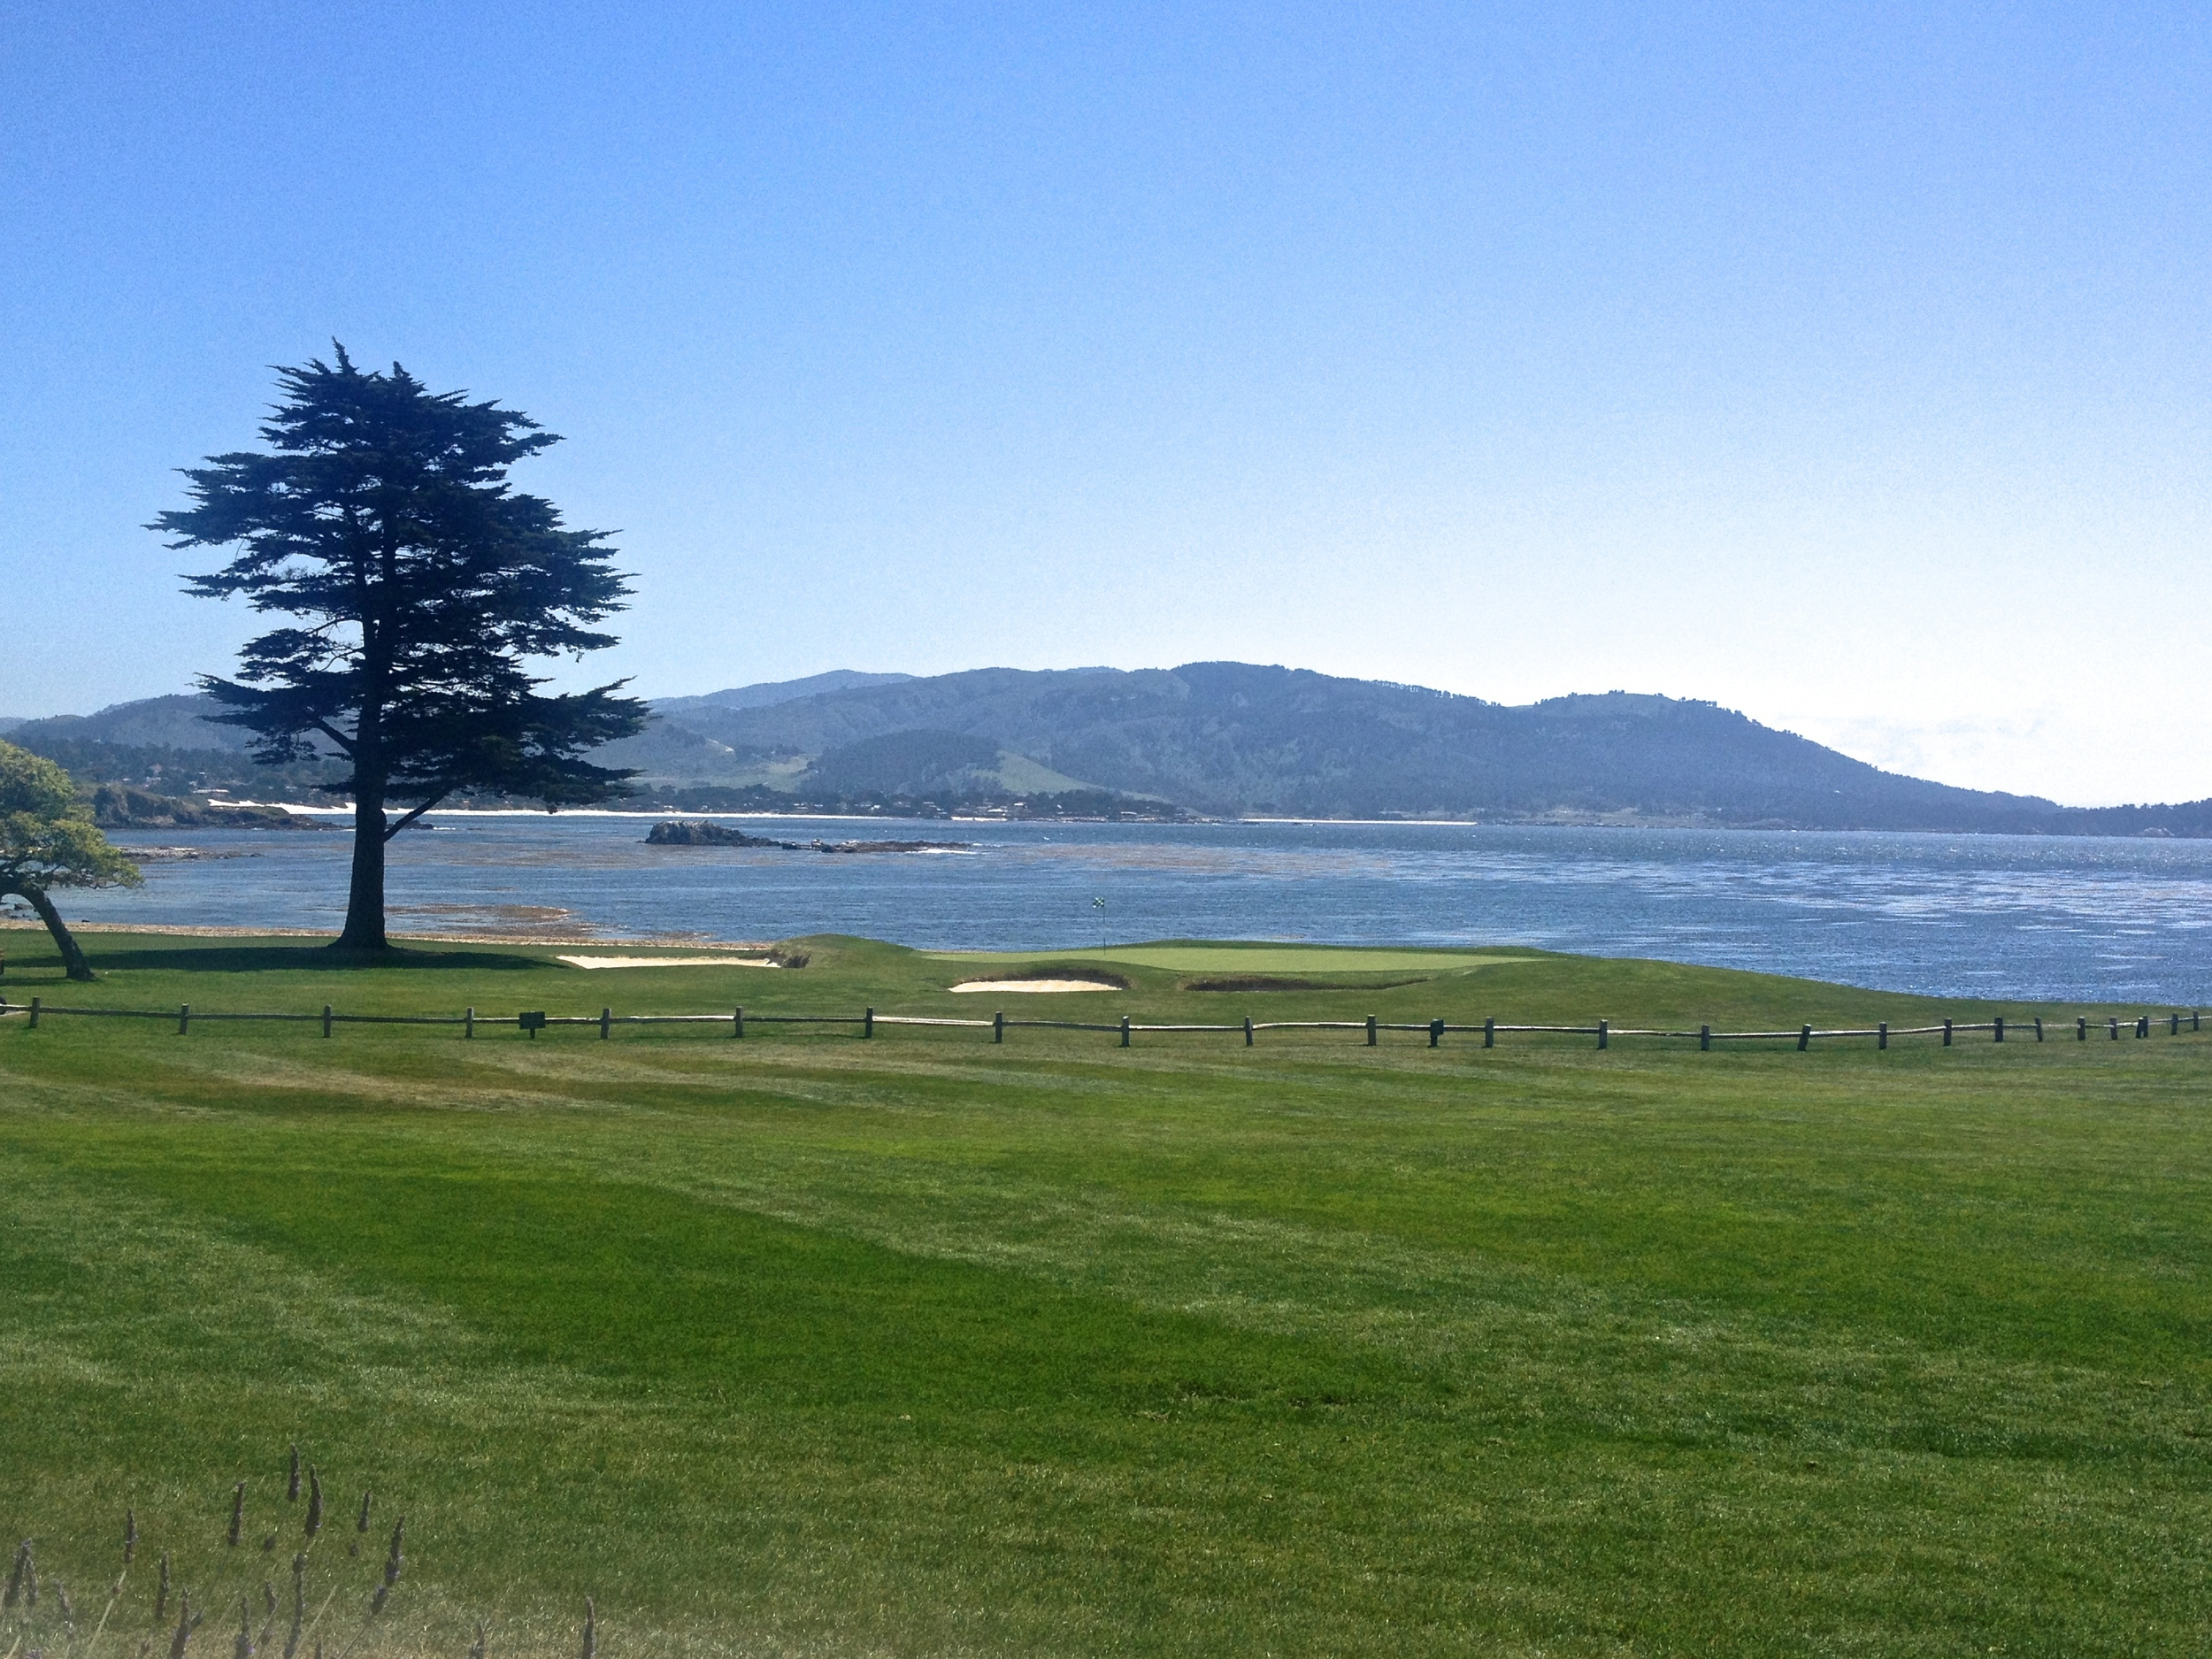 The Bench Restaurant, Pebble Beach